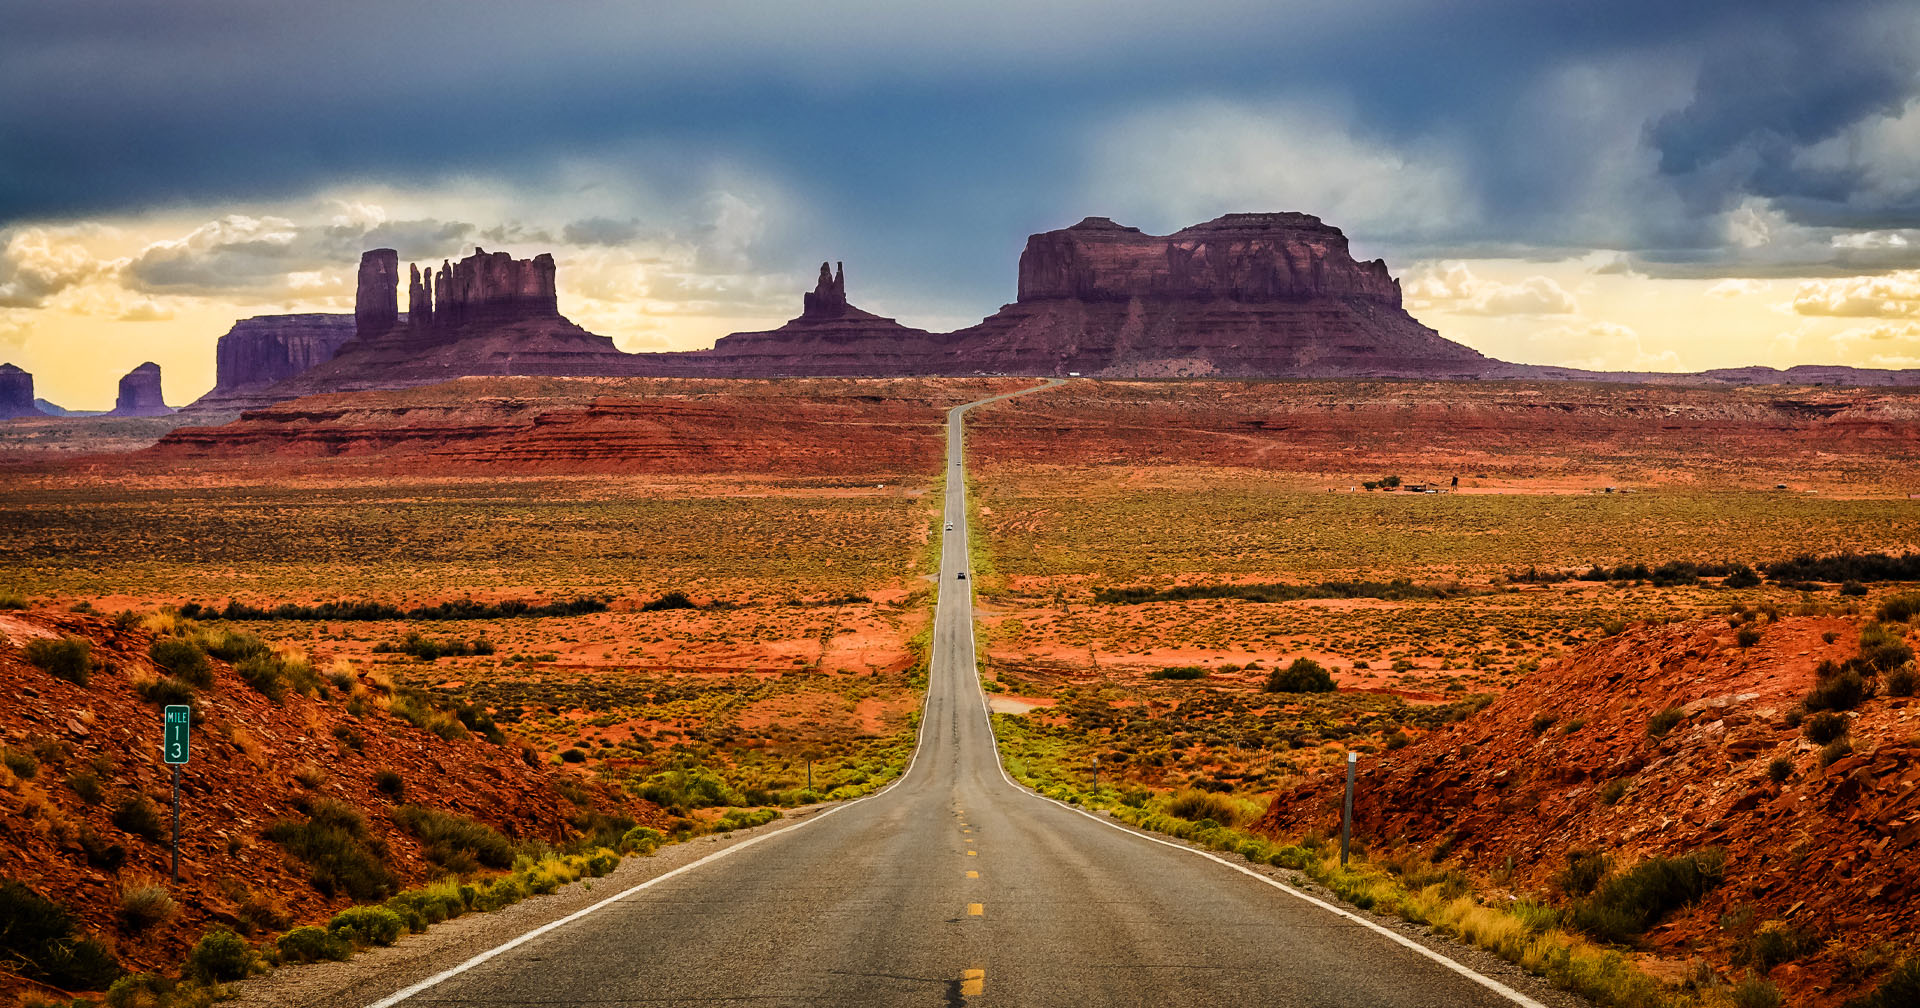 Highway 163 through Monument Valley is one of the most scenic drives and road trips in America, as evidenced by this view of the towering sandstone buttes in the Navajo Valley Park in Arizona.